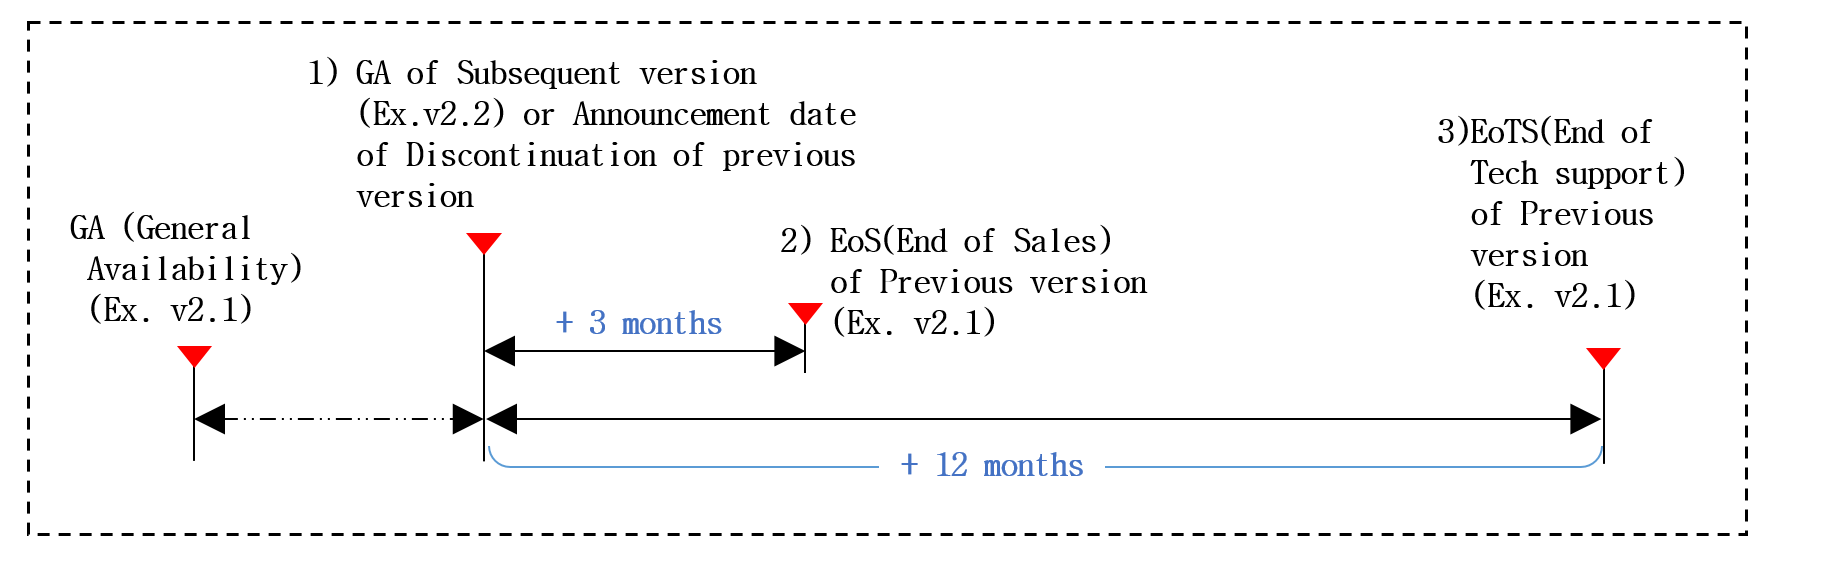 Technical support end date calculation method is to calculate the end date of the technical support for the old version when a new version is released. For example, when the new version of v2.2 is released or discontinuation of previous version is announced, the old version of v2.1 will be calculated from that point and will end sales three months later, and after twelve months later, no technical support of any kind will be provided for the old version v2.1.  It is strongly recommended that your software is upgraded to the latest version released.